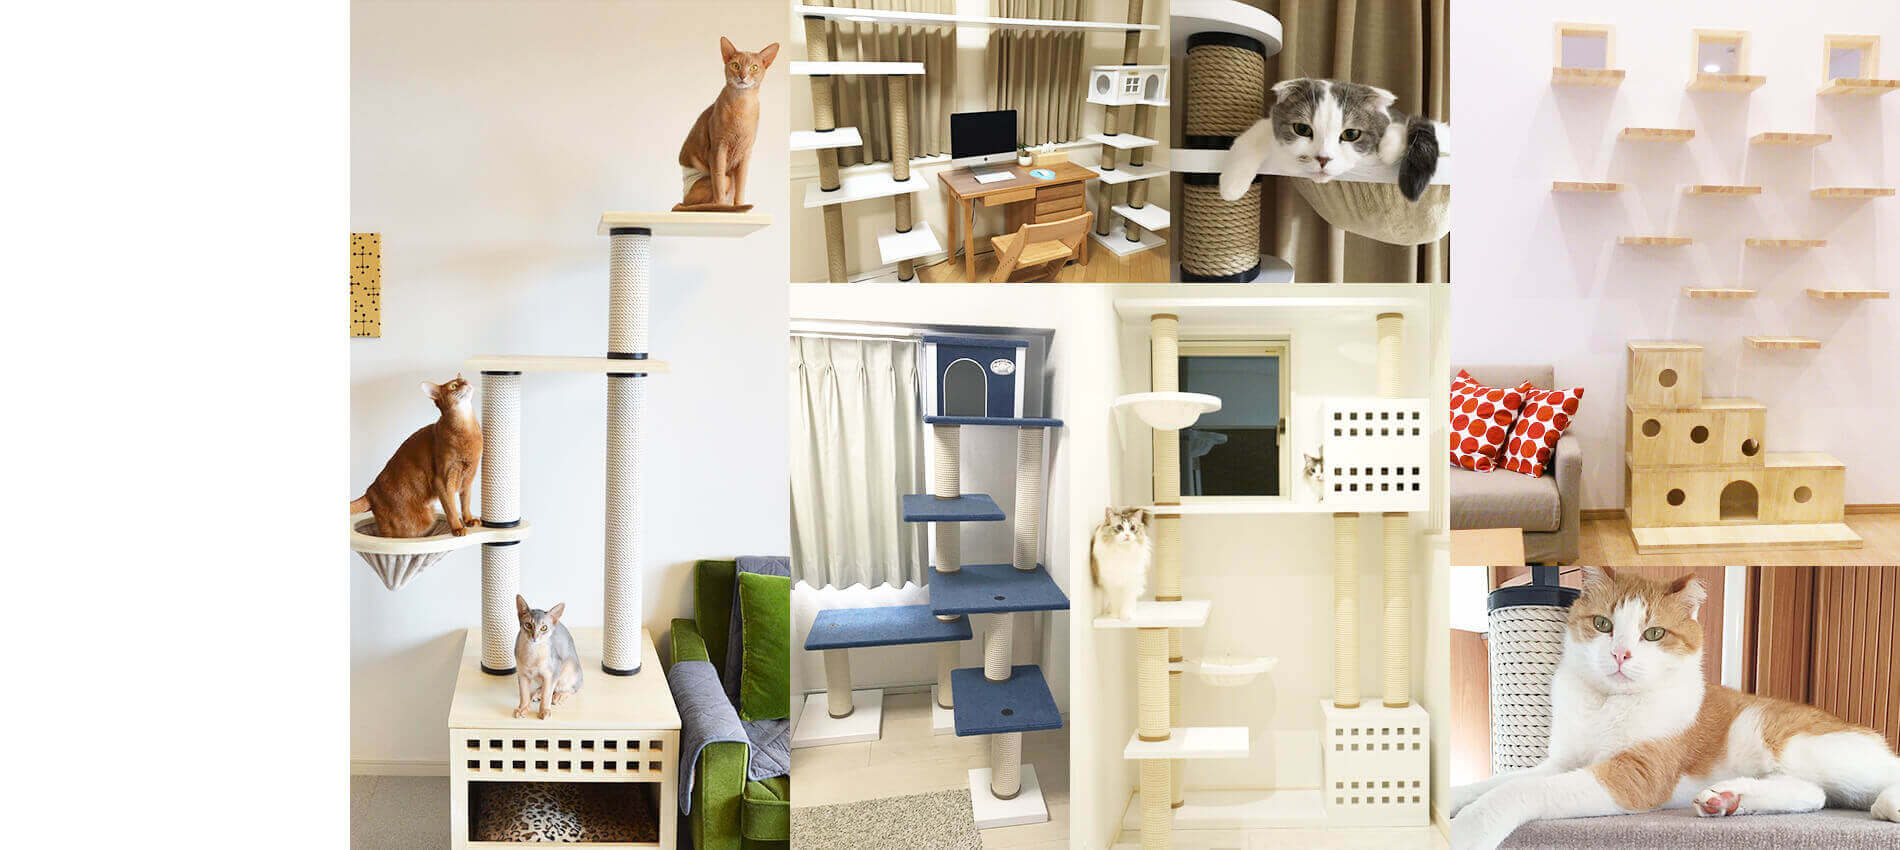 cat tower pet goods order made